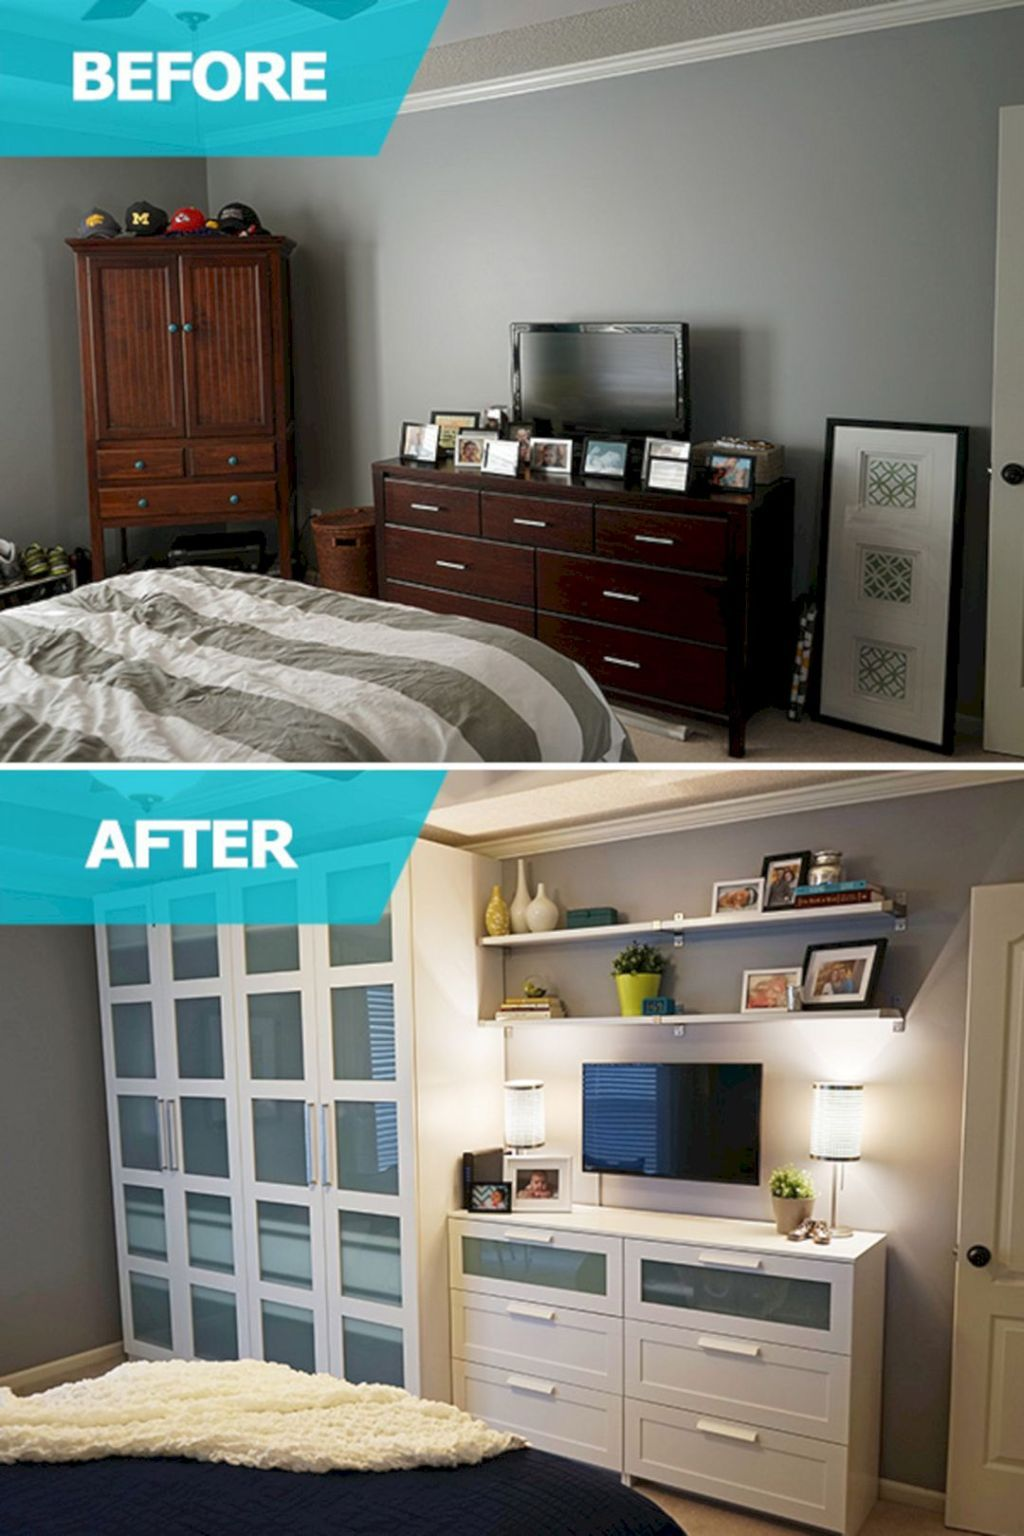 the best ideas for storage in the bedroom for small spaces No. 80 QCJNBDK